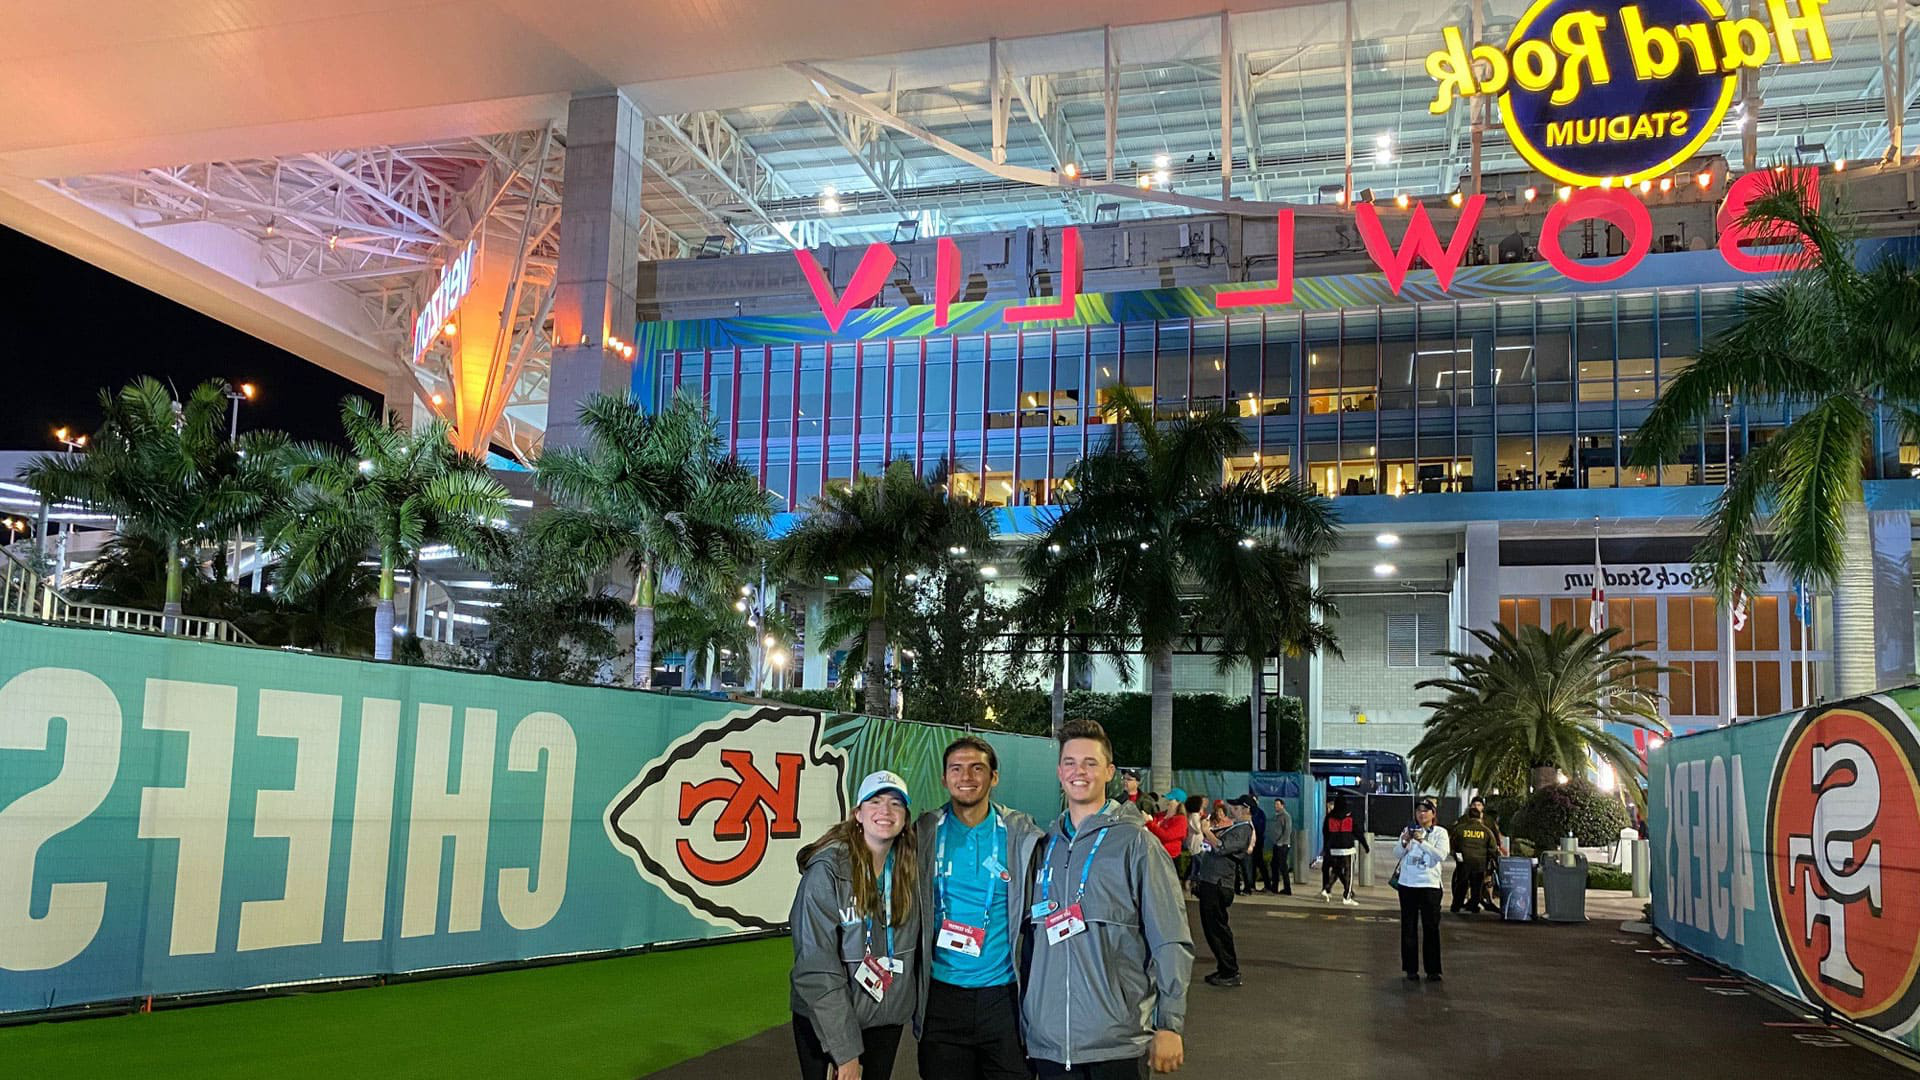 CQ9电子游戏 SEEM volunteers at the entrance to Super Bowl LIV